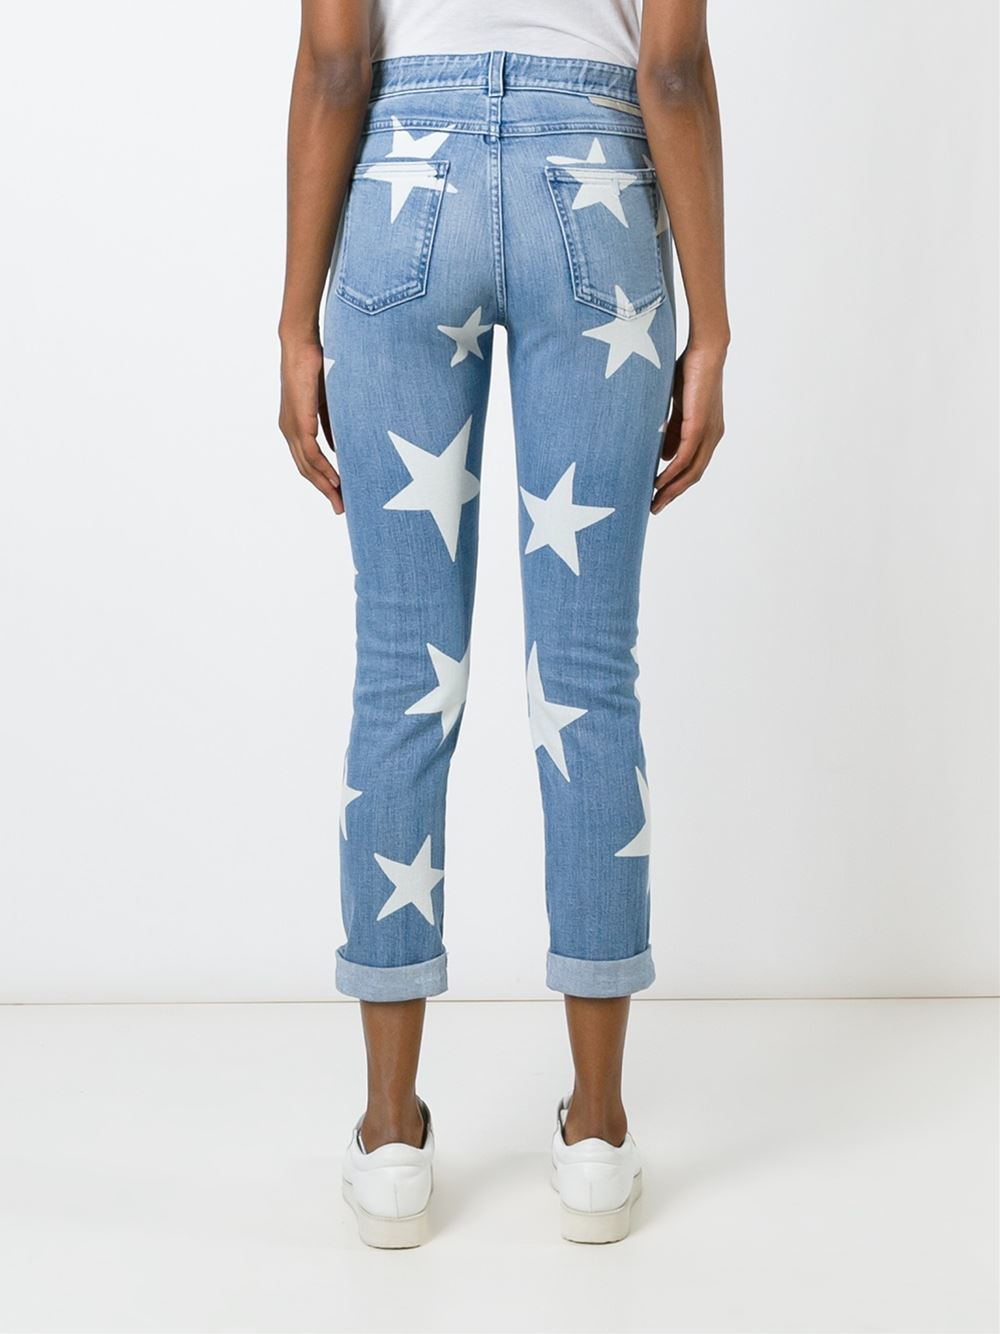 Stella McCartney Denim Skinny Boyfriend Jeans With Stars in Blue